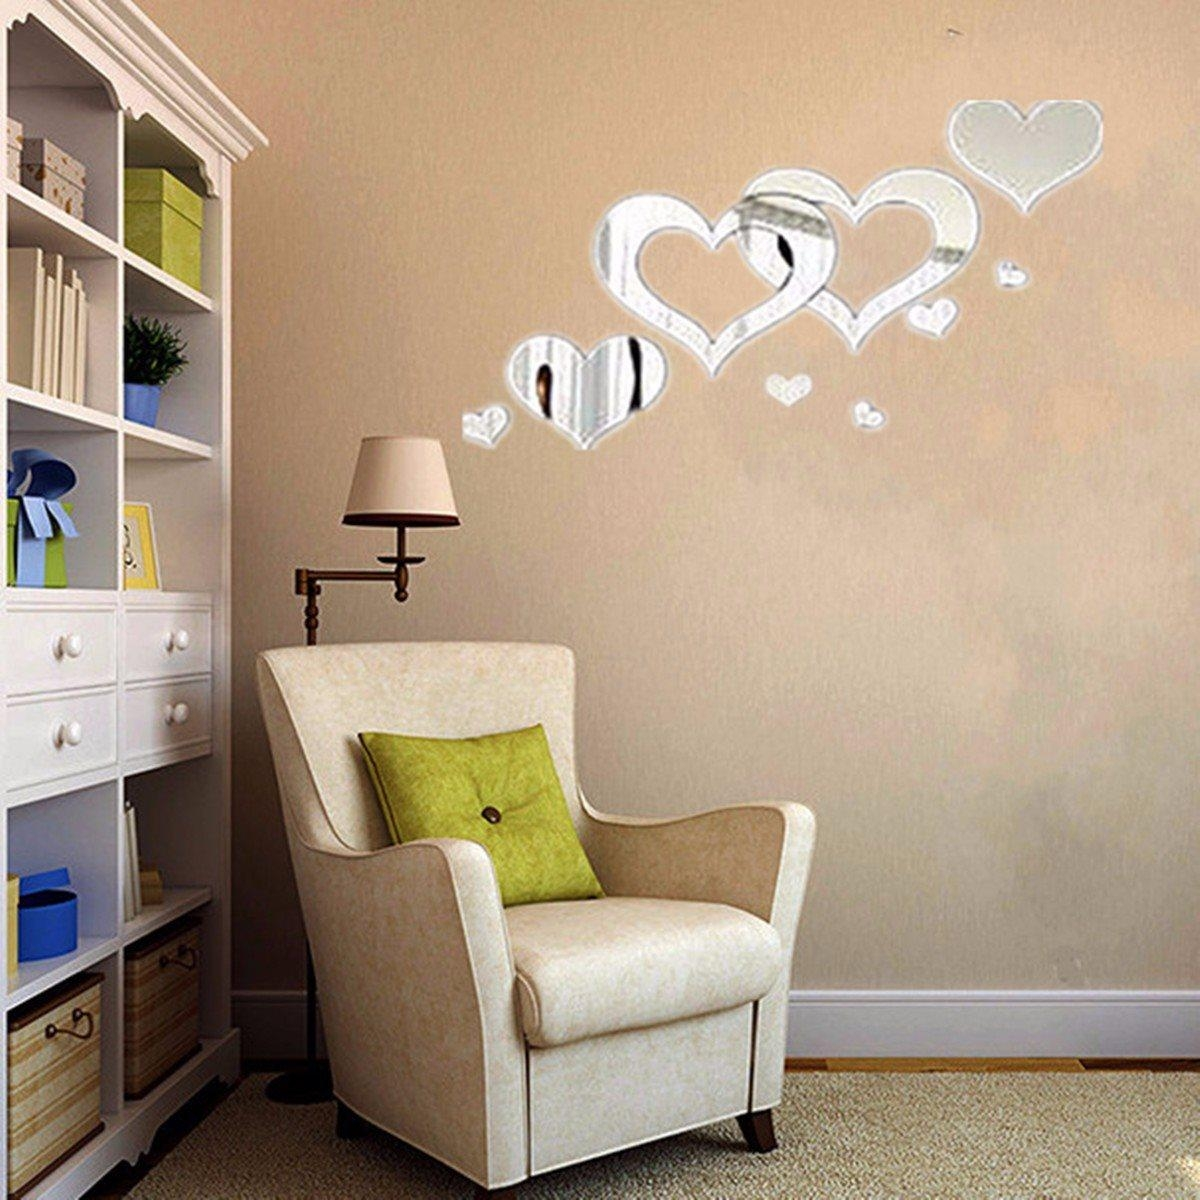 Popular Heart Shaped Mirrors Buy Cheap Heart Shaped Mirrors Lots Regarding Heart Shaped Mirrors For Walls (View 3 of 20)